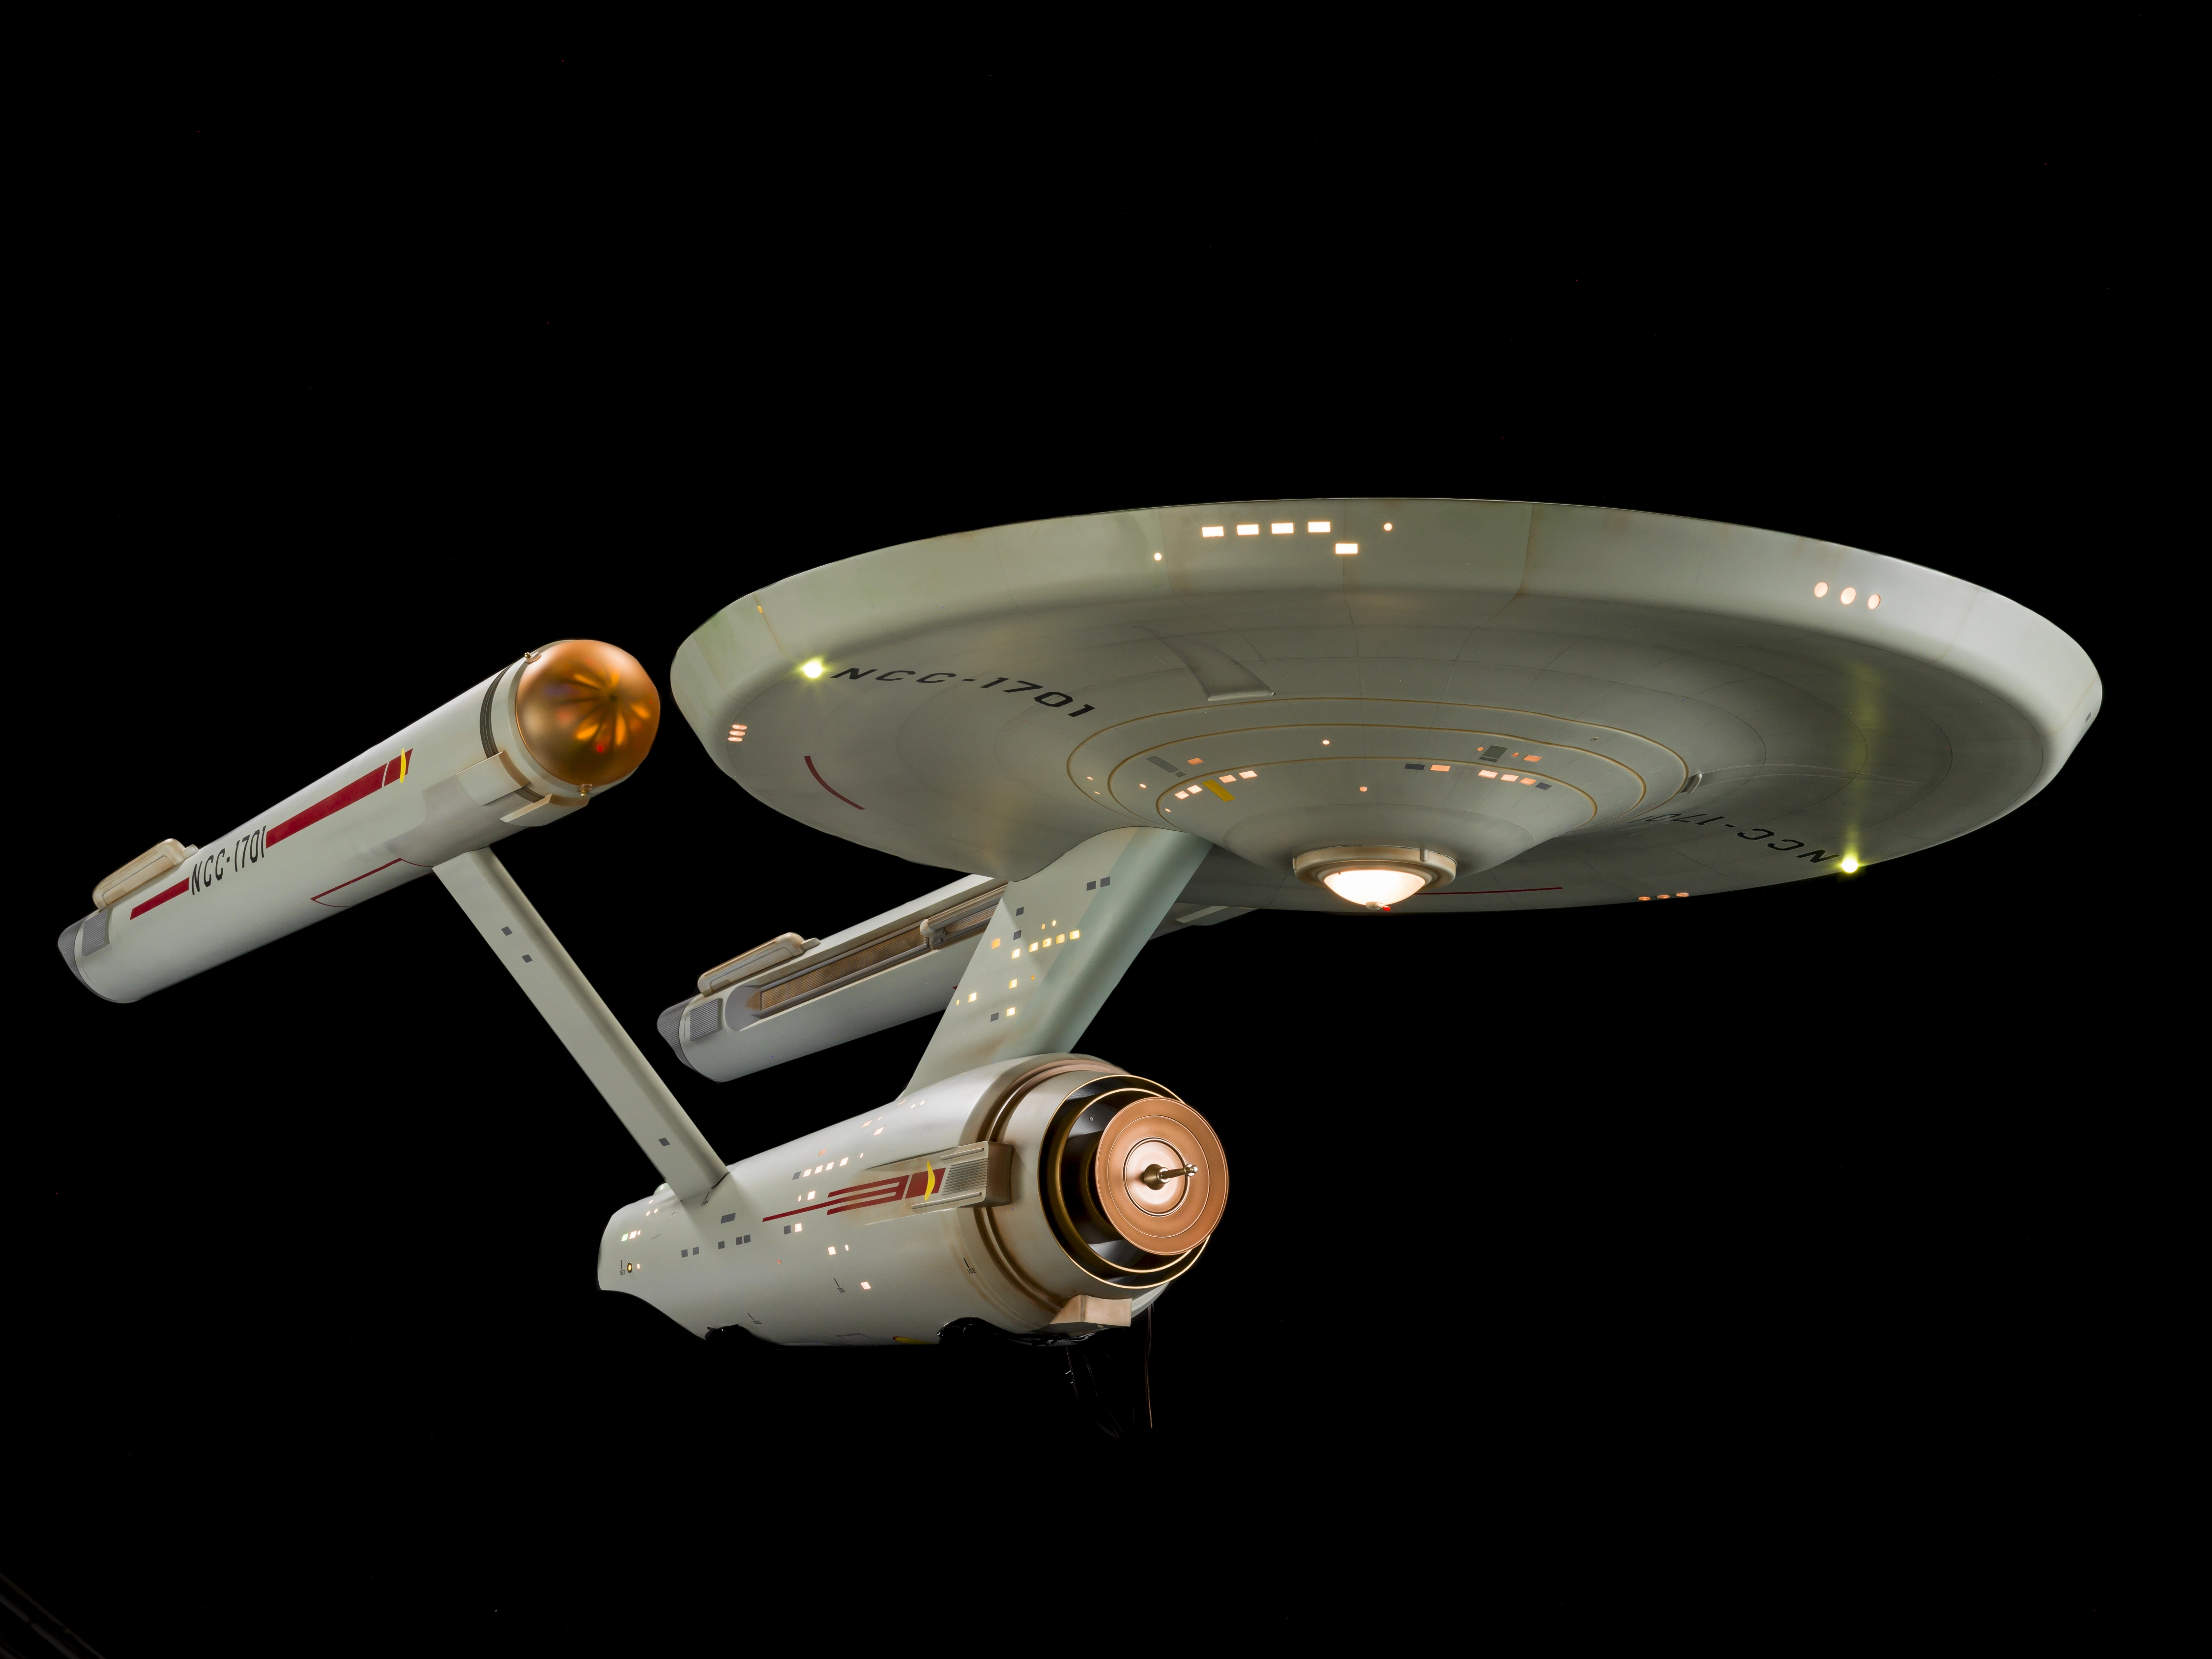 """The iconic science fiction TV series """"Star Trek"""" first aired on Sept. 8, 1966 and celebrates its 50th anniversary in 2016. The show chronicled the voyages of the starship USS Enterprise. The studio model of the ship (shown here) has been fully restored an"""